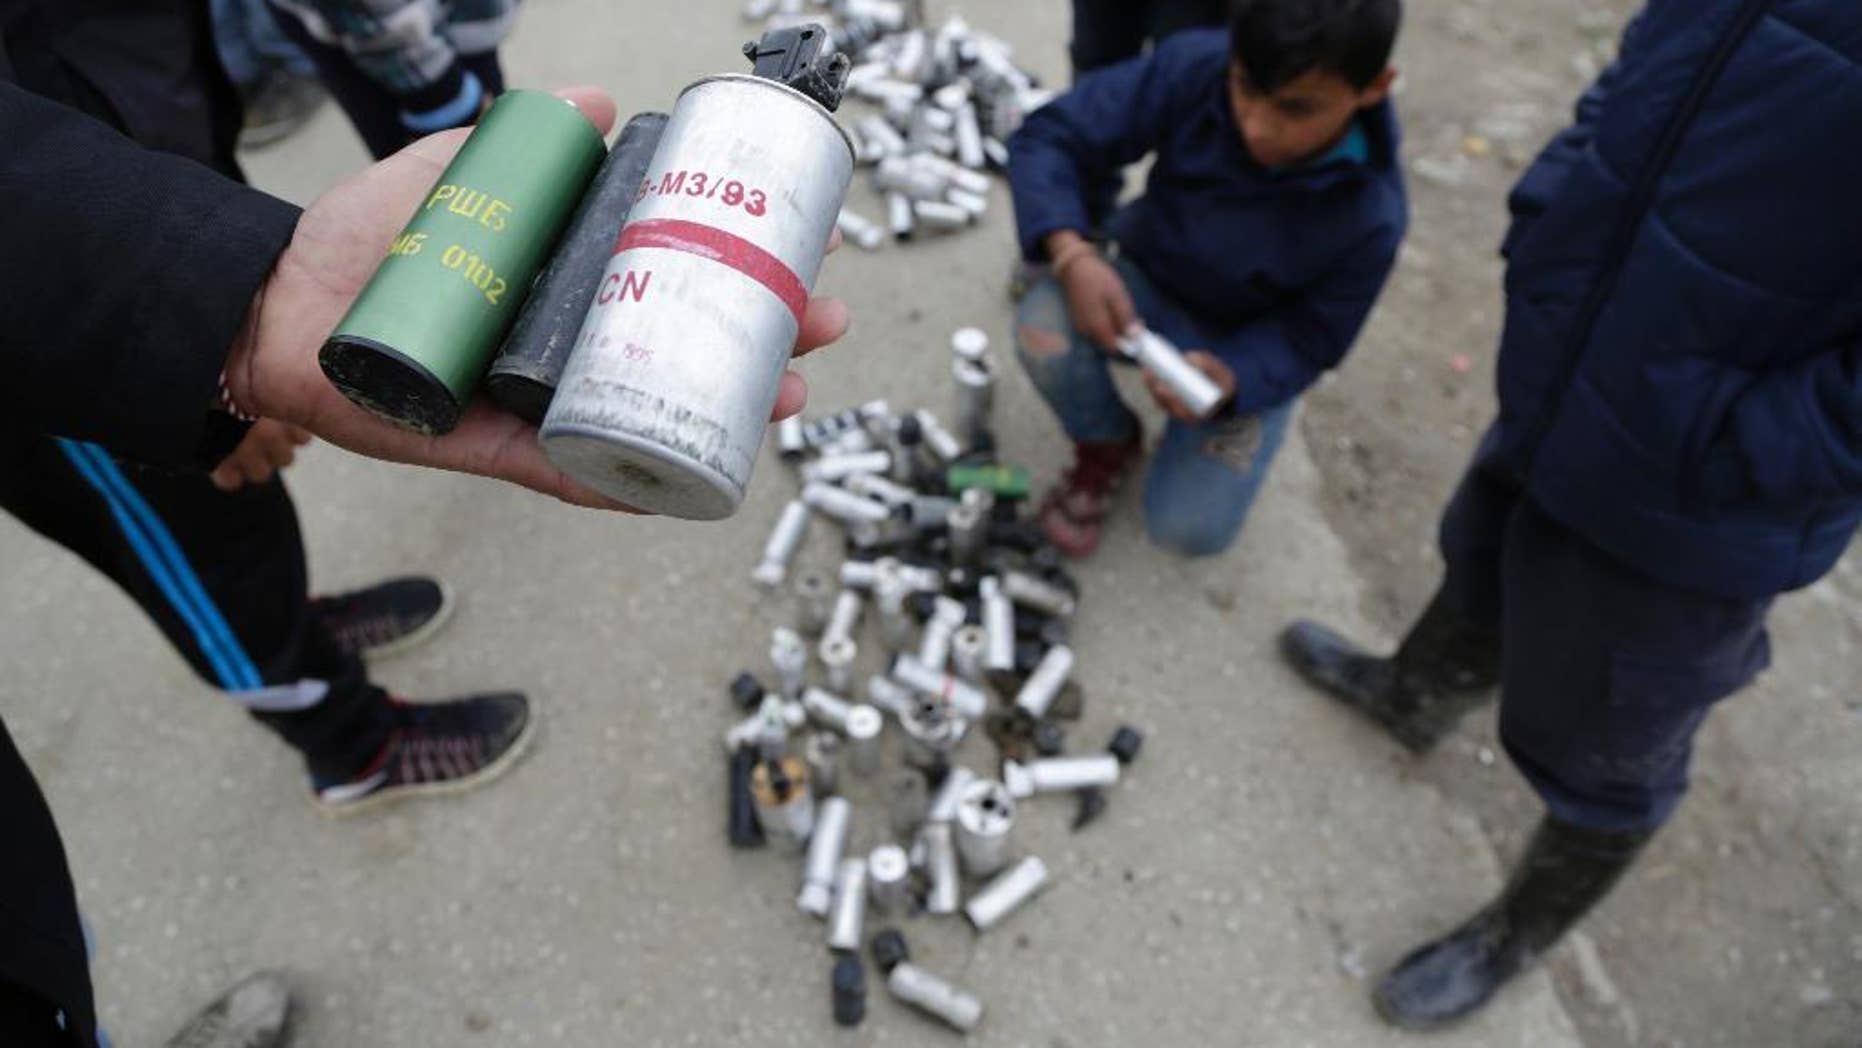 Migrant men shows used tear gas canisters apparently used by Macedonian police during yesterday riots at the fence of a makeshift camp in the northern Greek border point of Idomeni, Greece, Monday, April 11, 2016. More than 12,000 people have been stuck at the Idomeni border point for more than a month hoping that it would reopen. (AP Photo/Amel Emric)